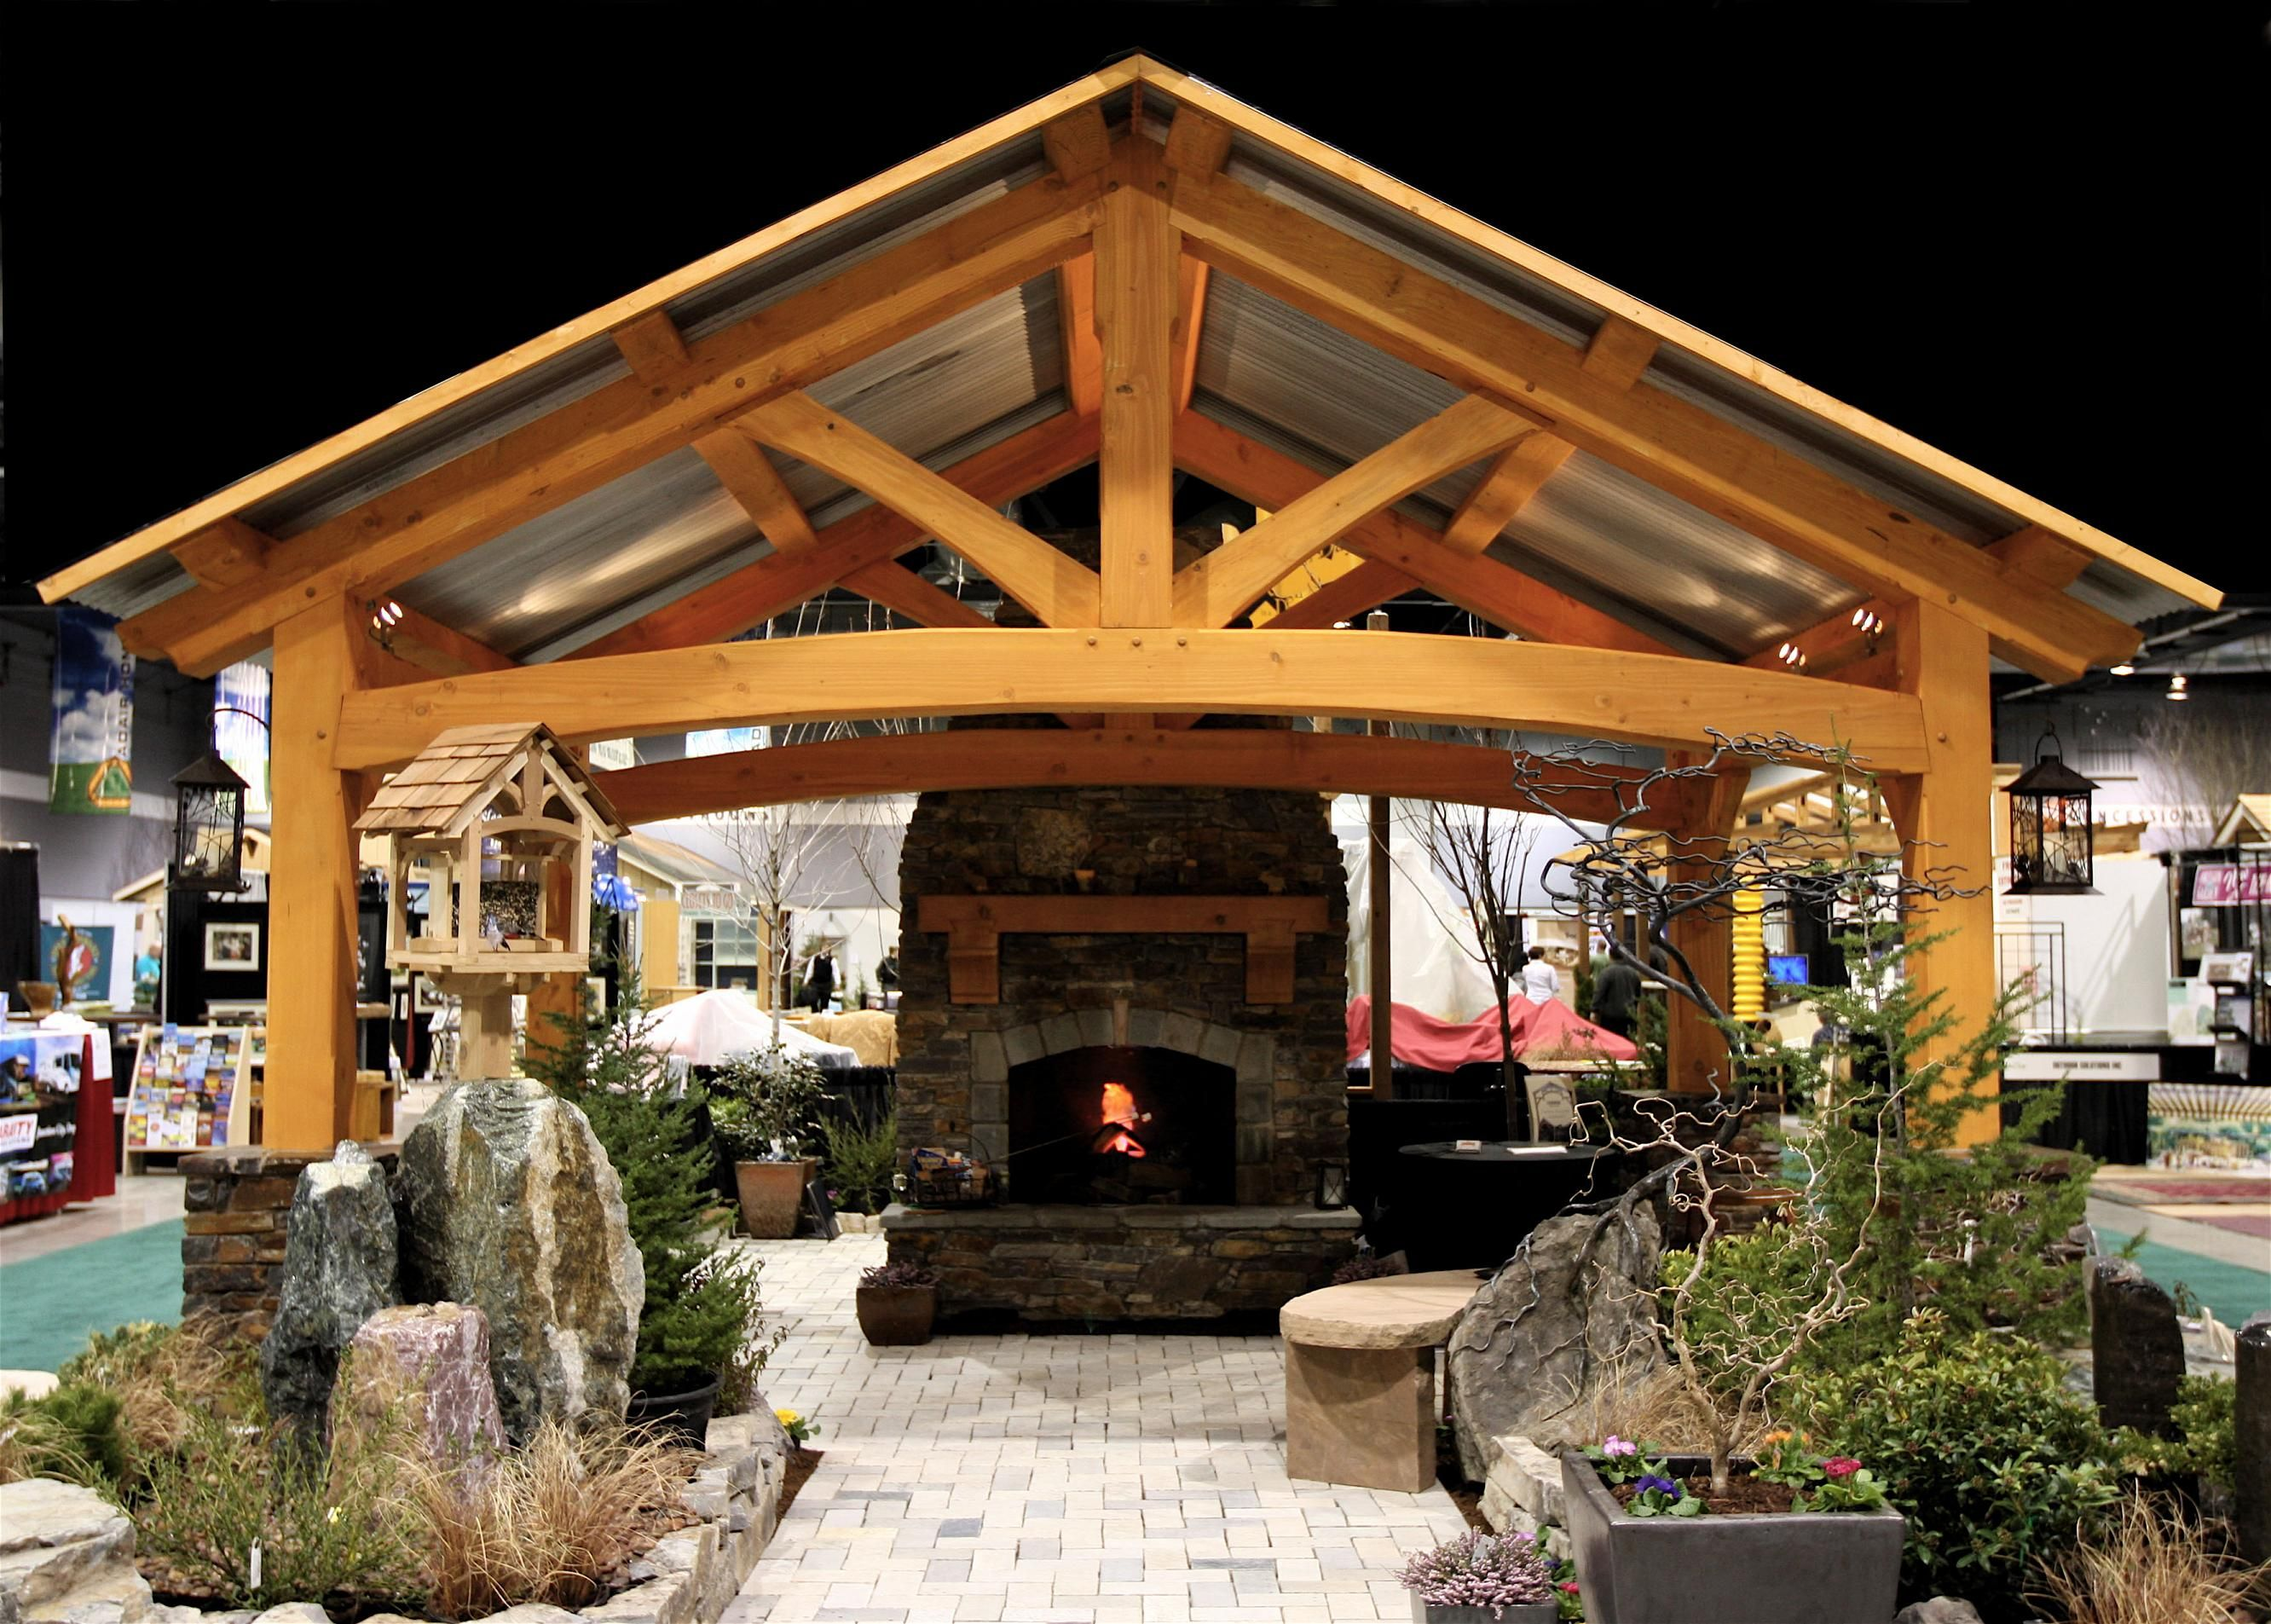 backyard pavilion kits outdoor living room with a fireplace timber frame pavilion kits - Patio Pavilion Ideas